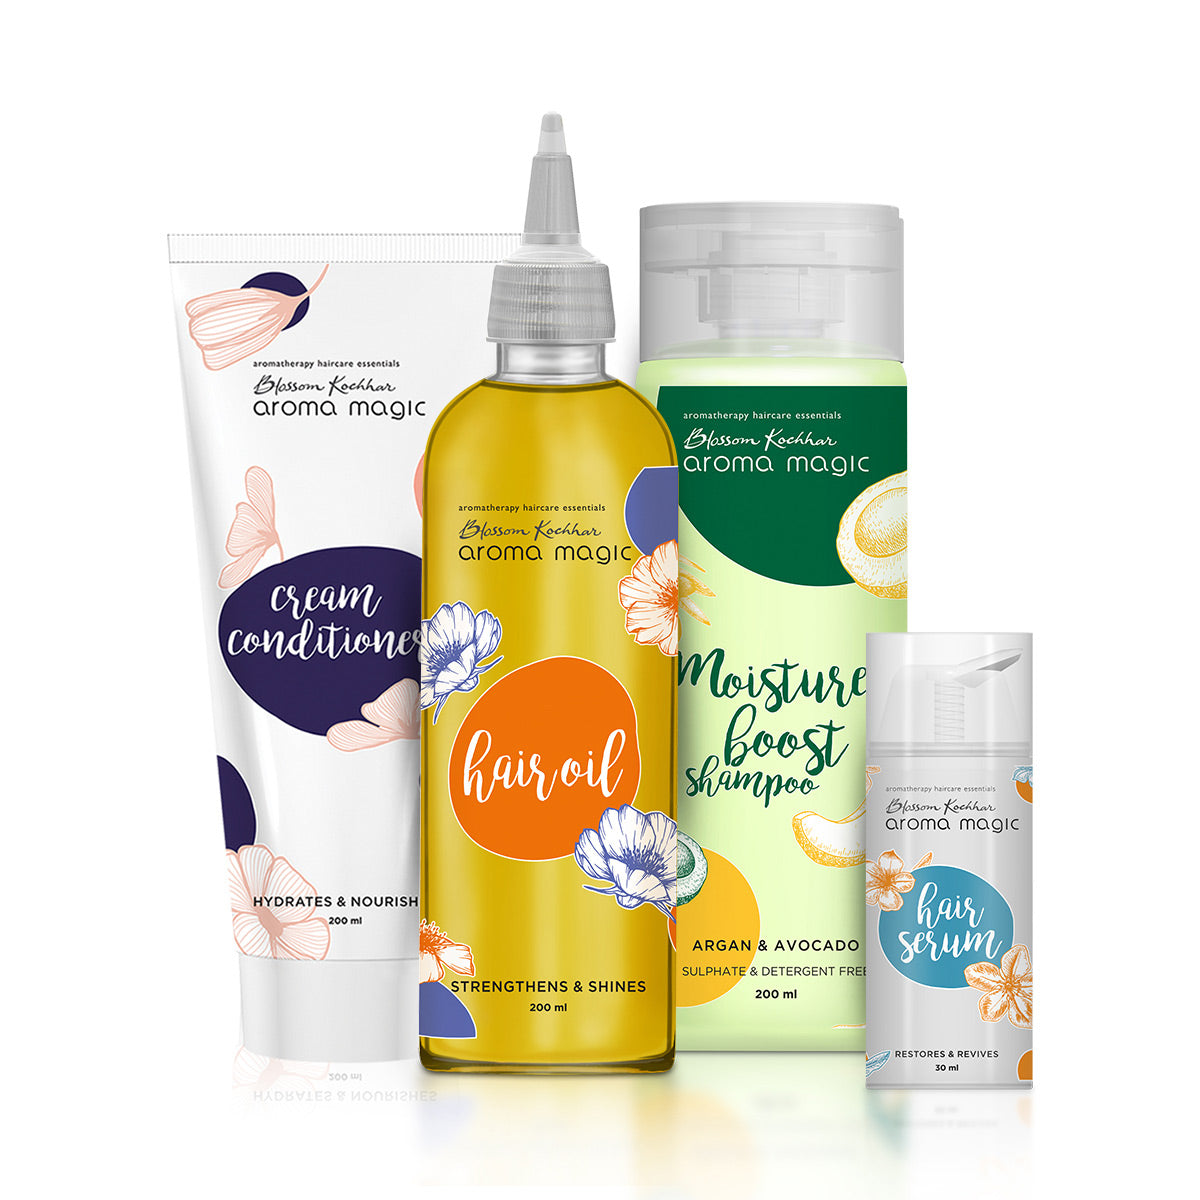 Dry & Damaged Hair Care Regime